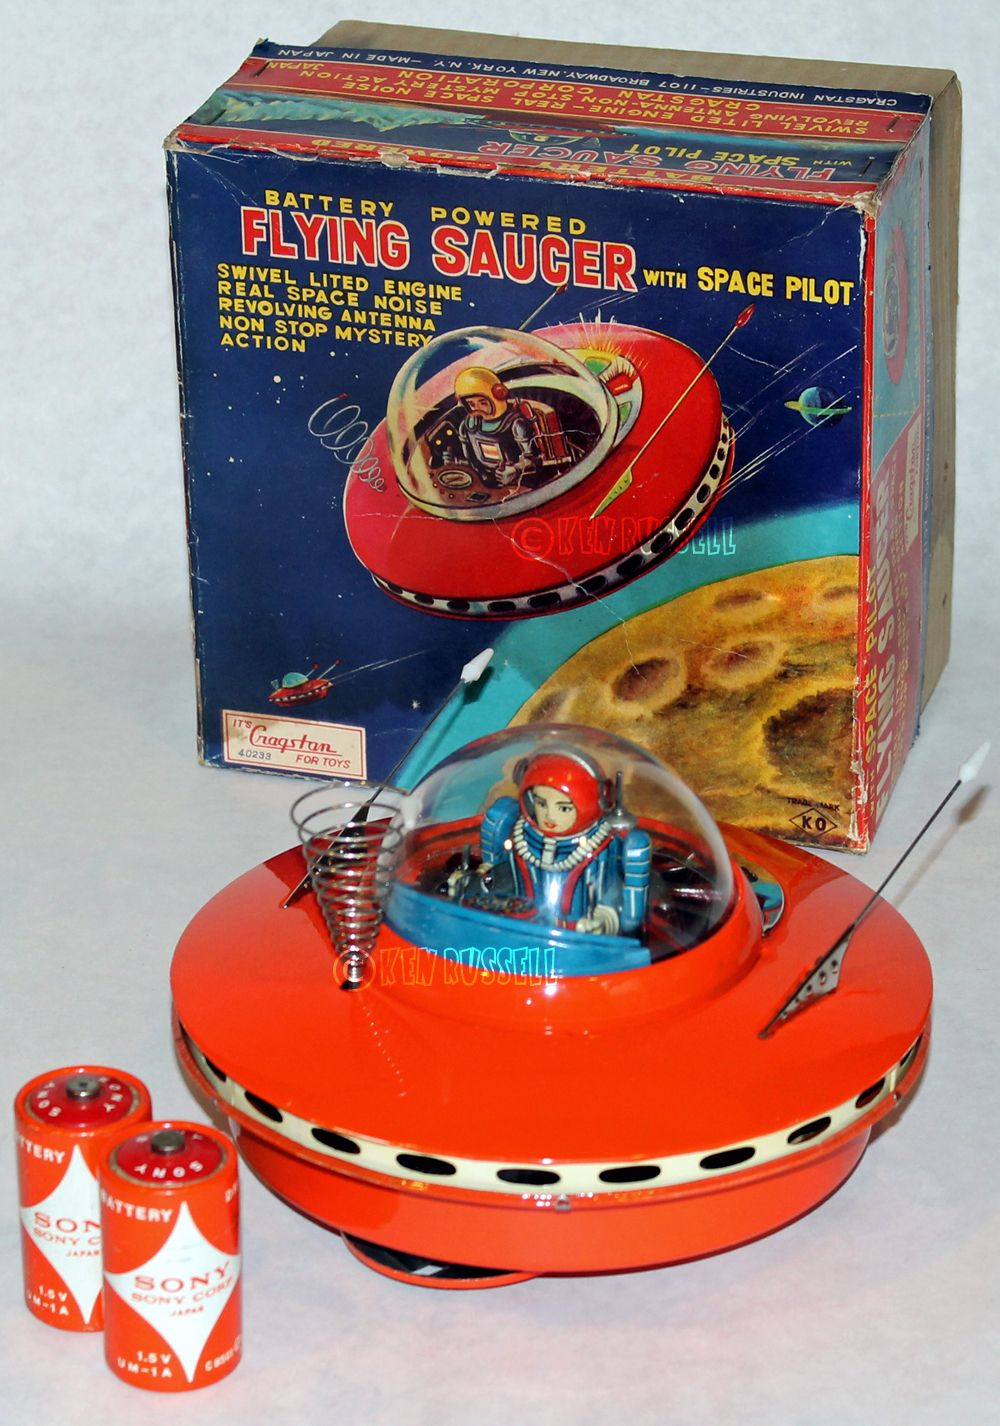 1961 CRAGSTAN KO FLYING SAUCER WITH SPACE PILOT UFO MADE IN JAPAN ブリキ